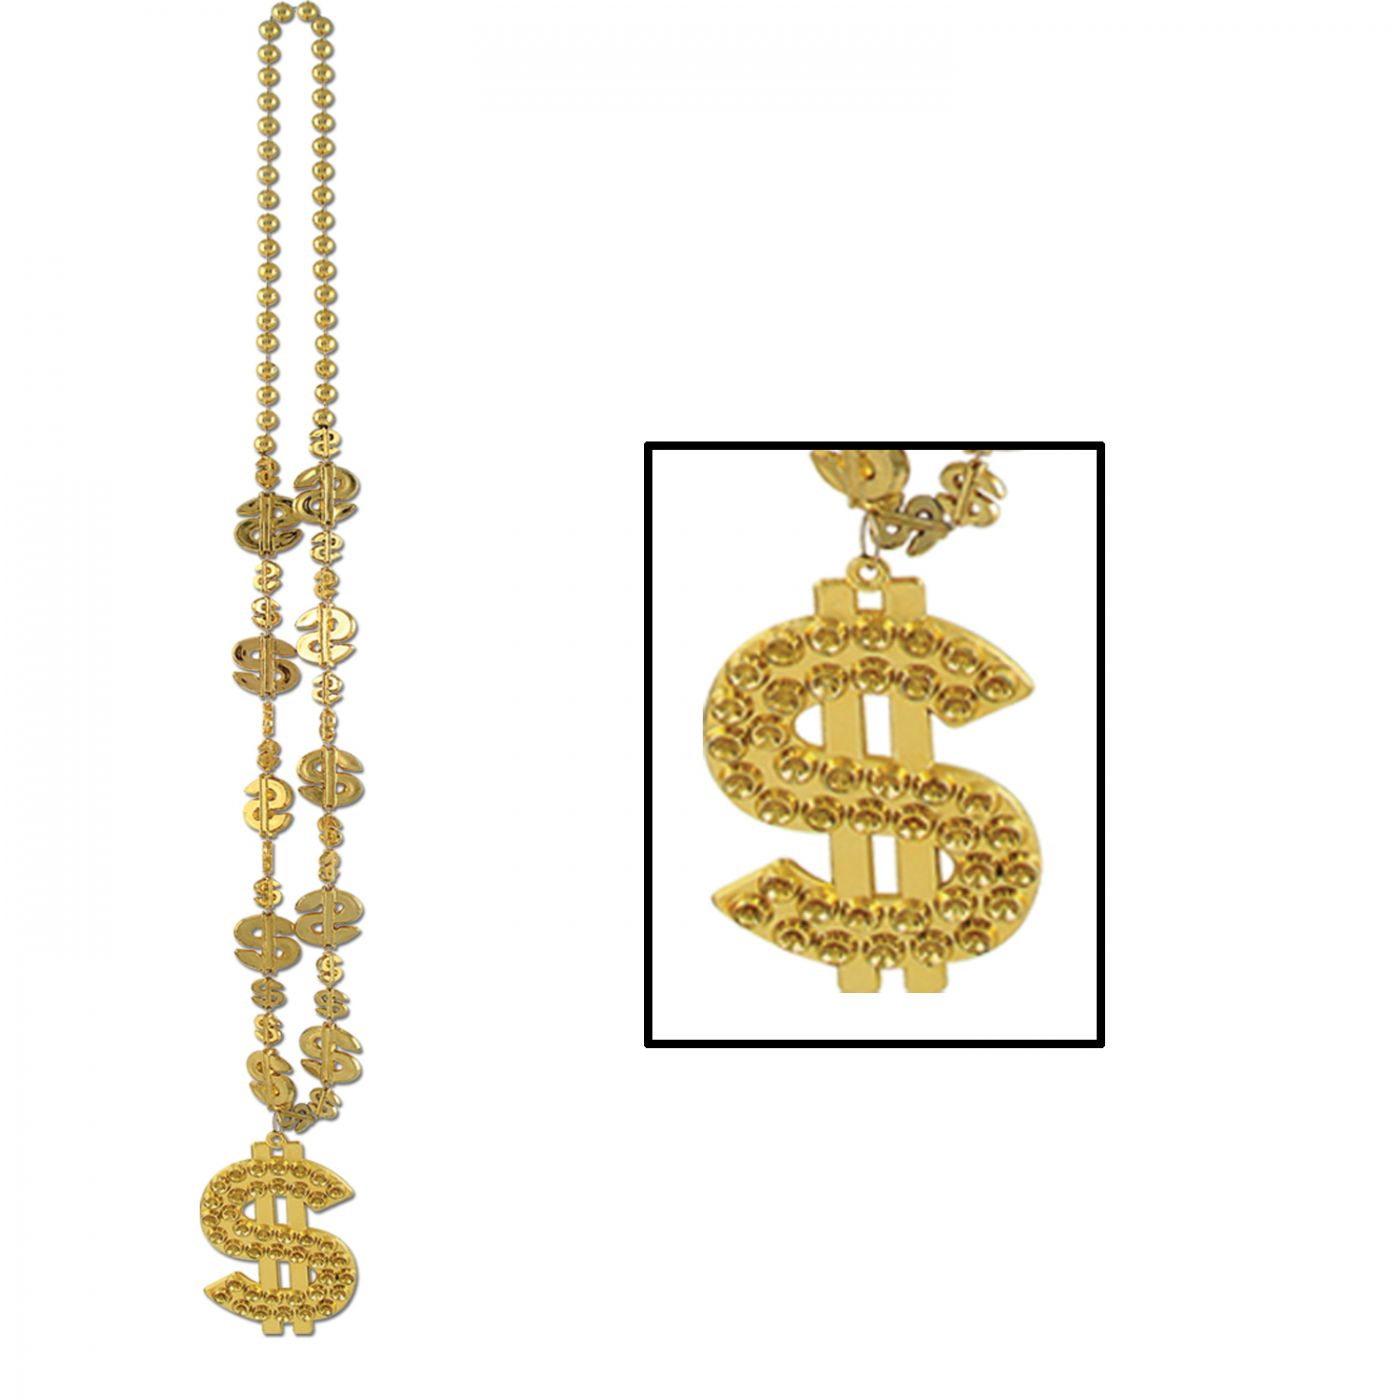 Image of  $  Beads w/ $  Medallion